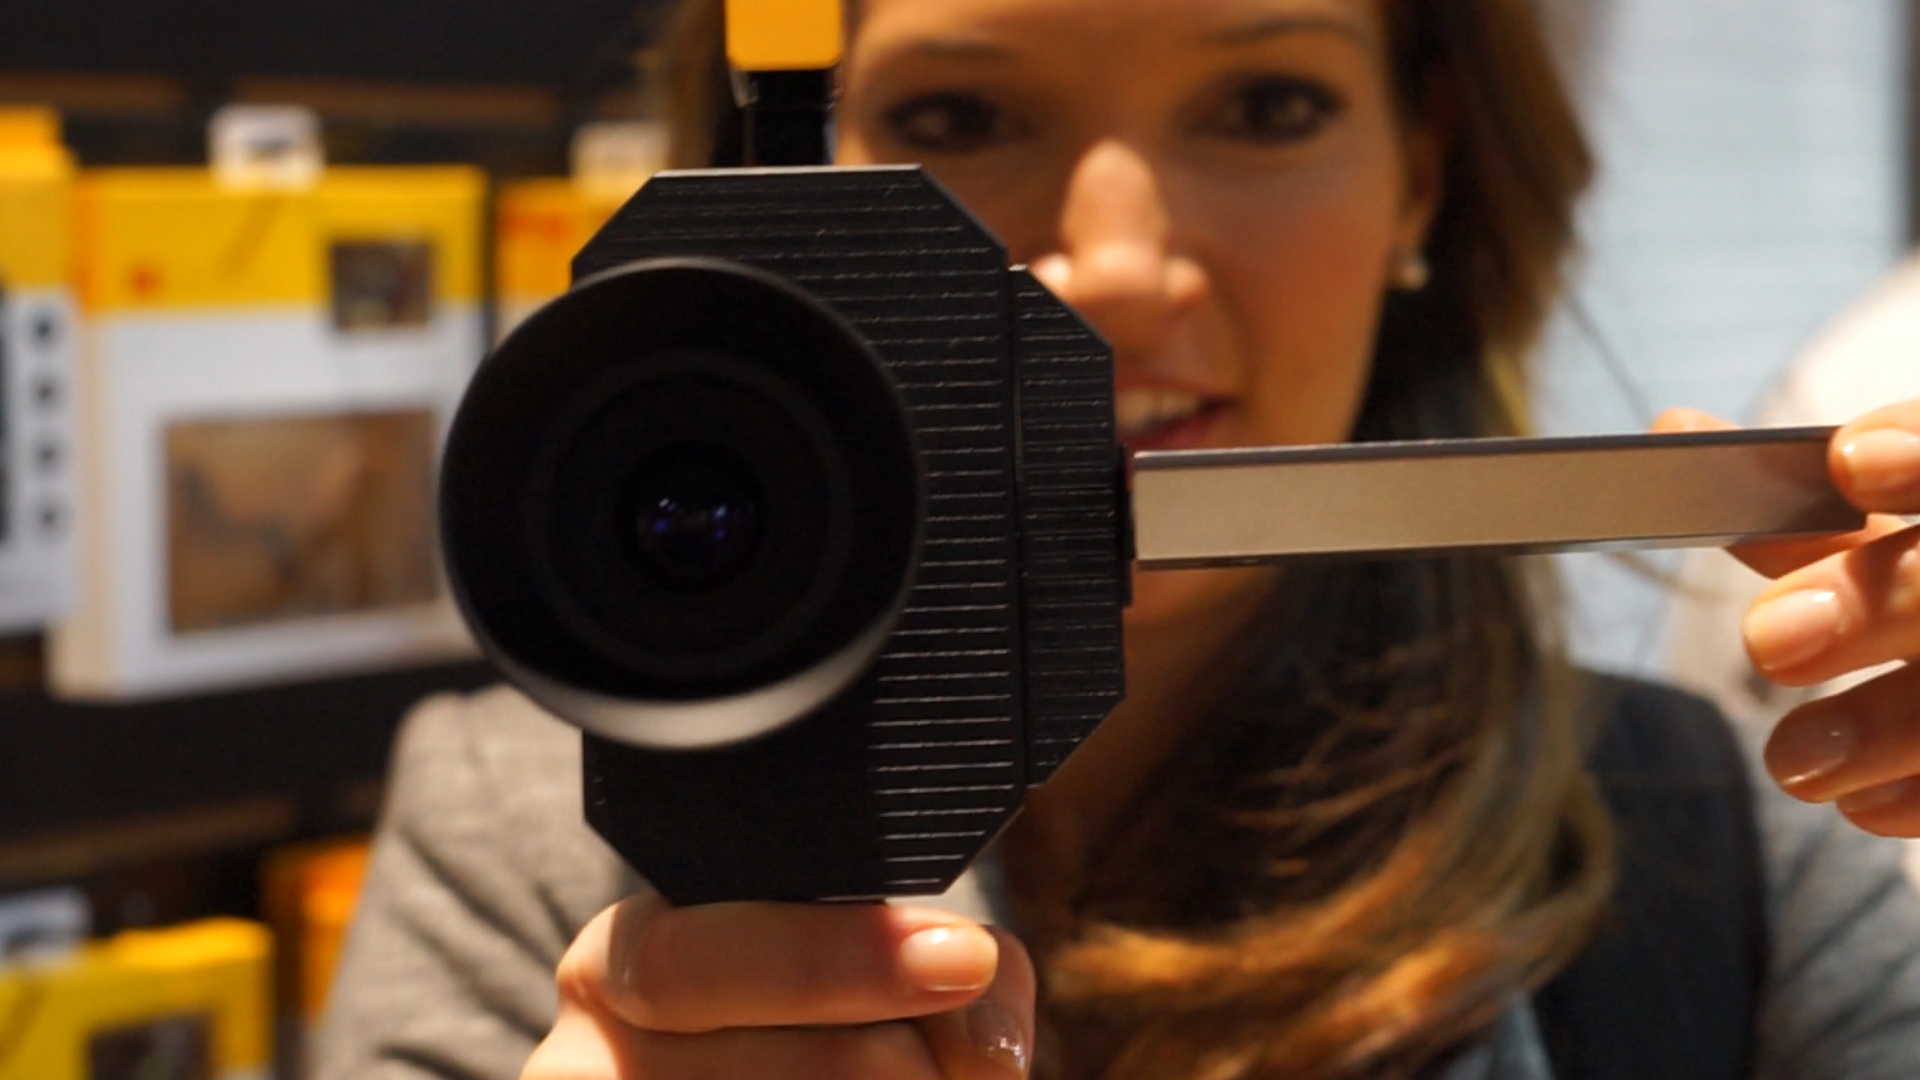 Video: Kodak's revamped Super 8 camera will make film purists drool